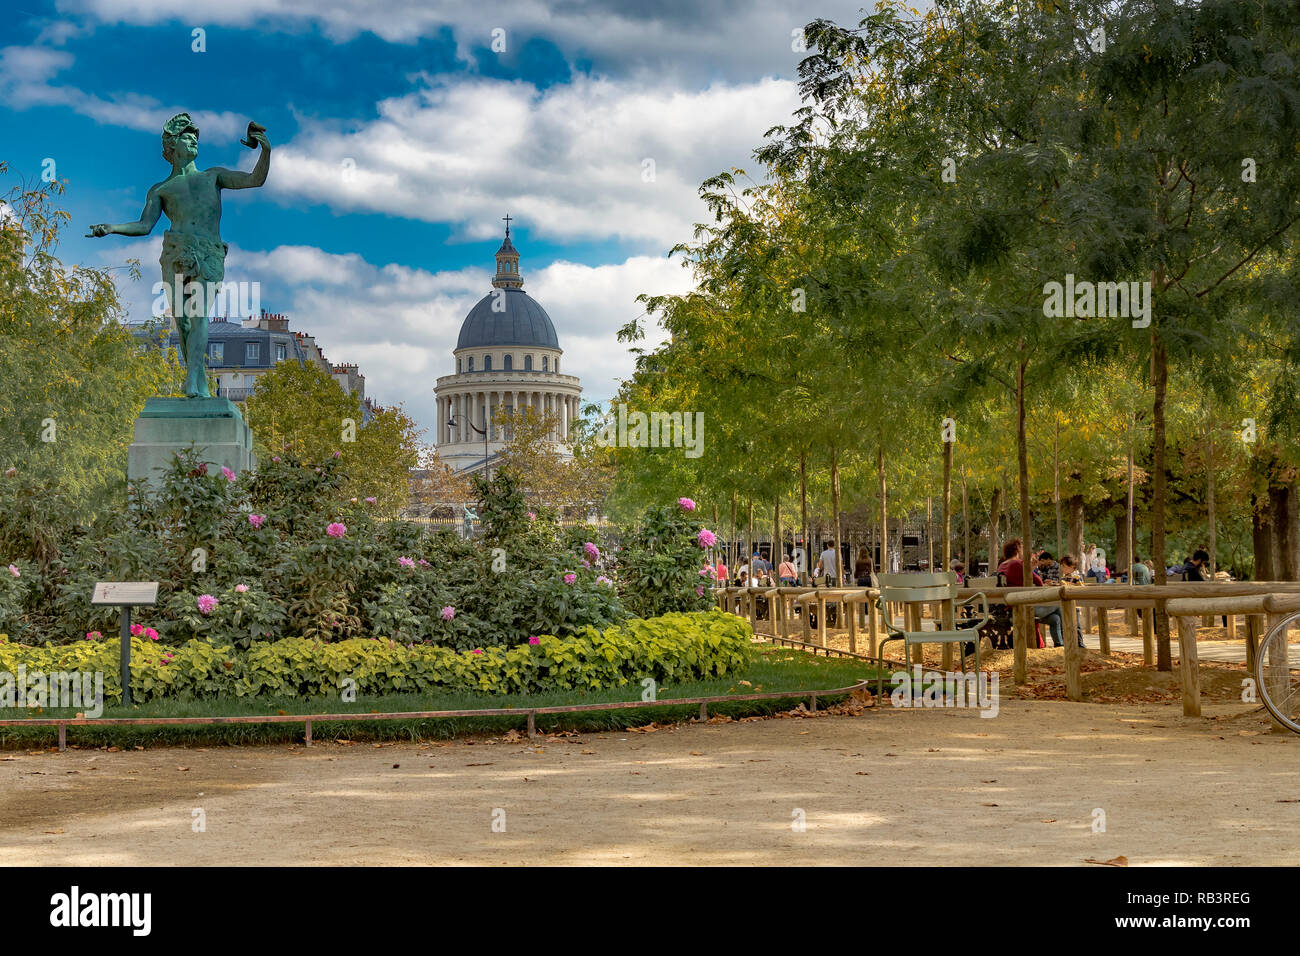 Statue of the Greek Actor with the dome of the The Pantheon in the distance in the Jardin du Luxembourg ,Paris - Stock Image